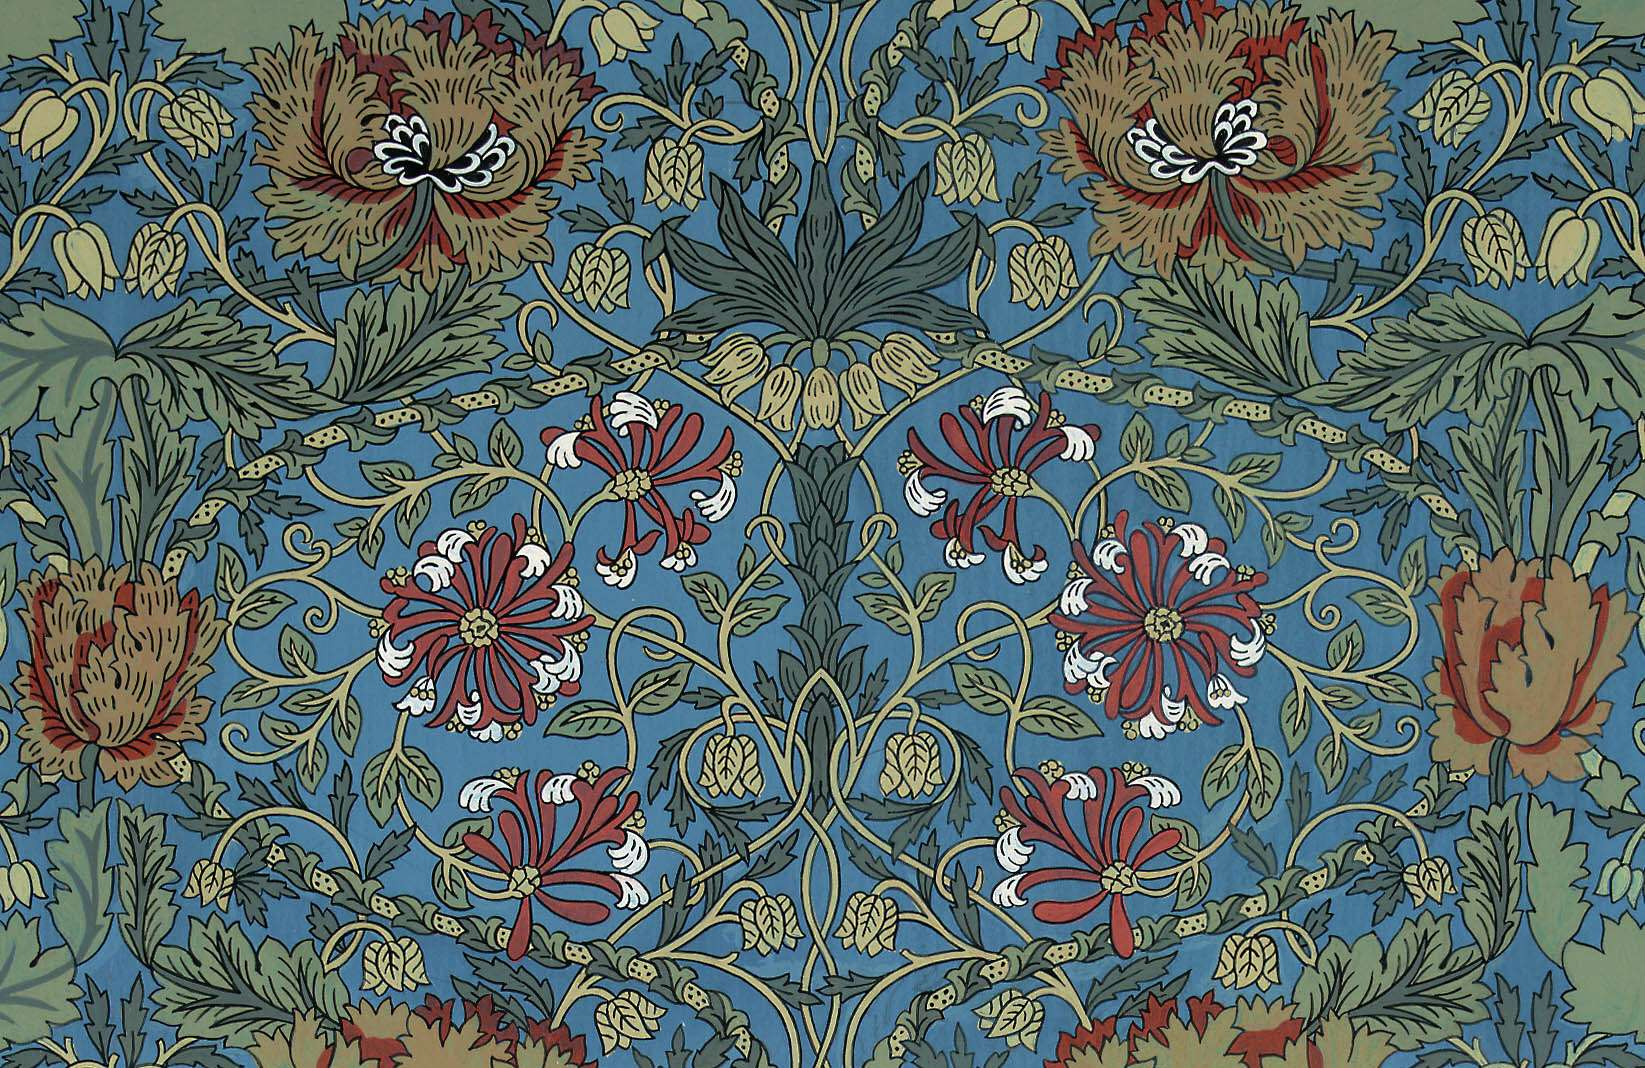 A Spotlight On… William Morris